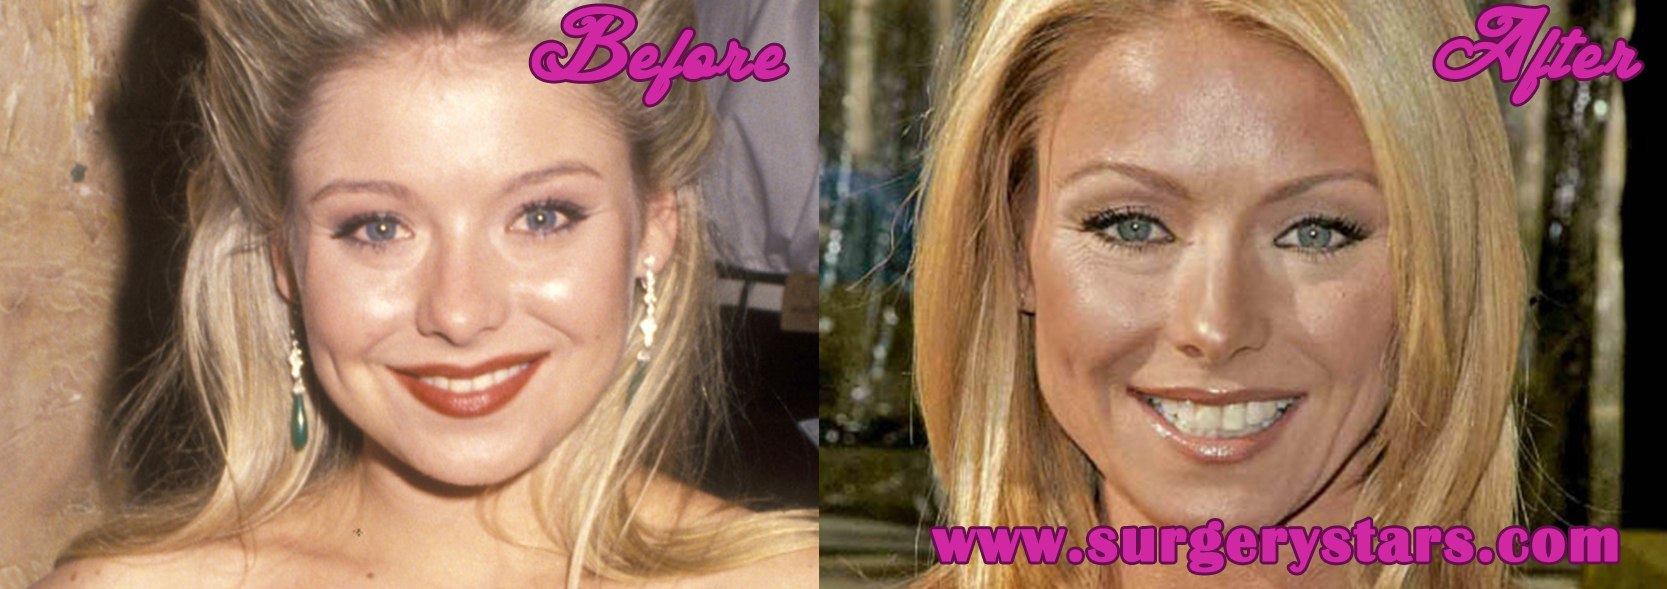 Kelly Ripa Plastic Surgery nose job and botox